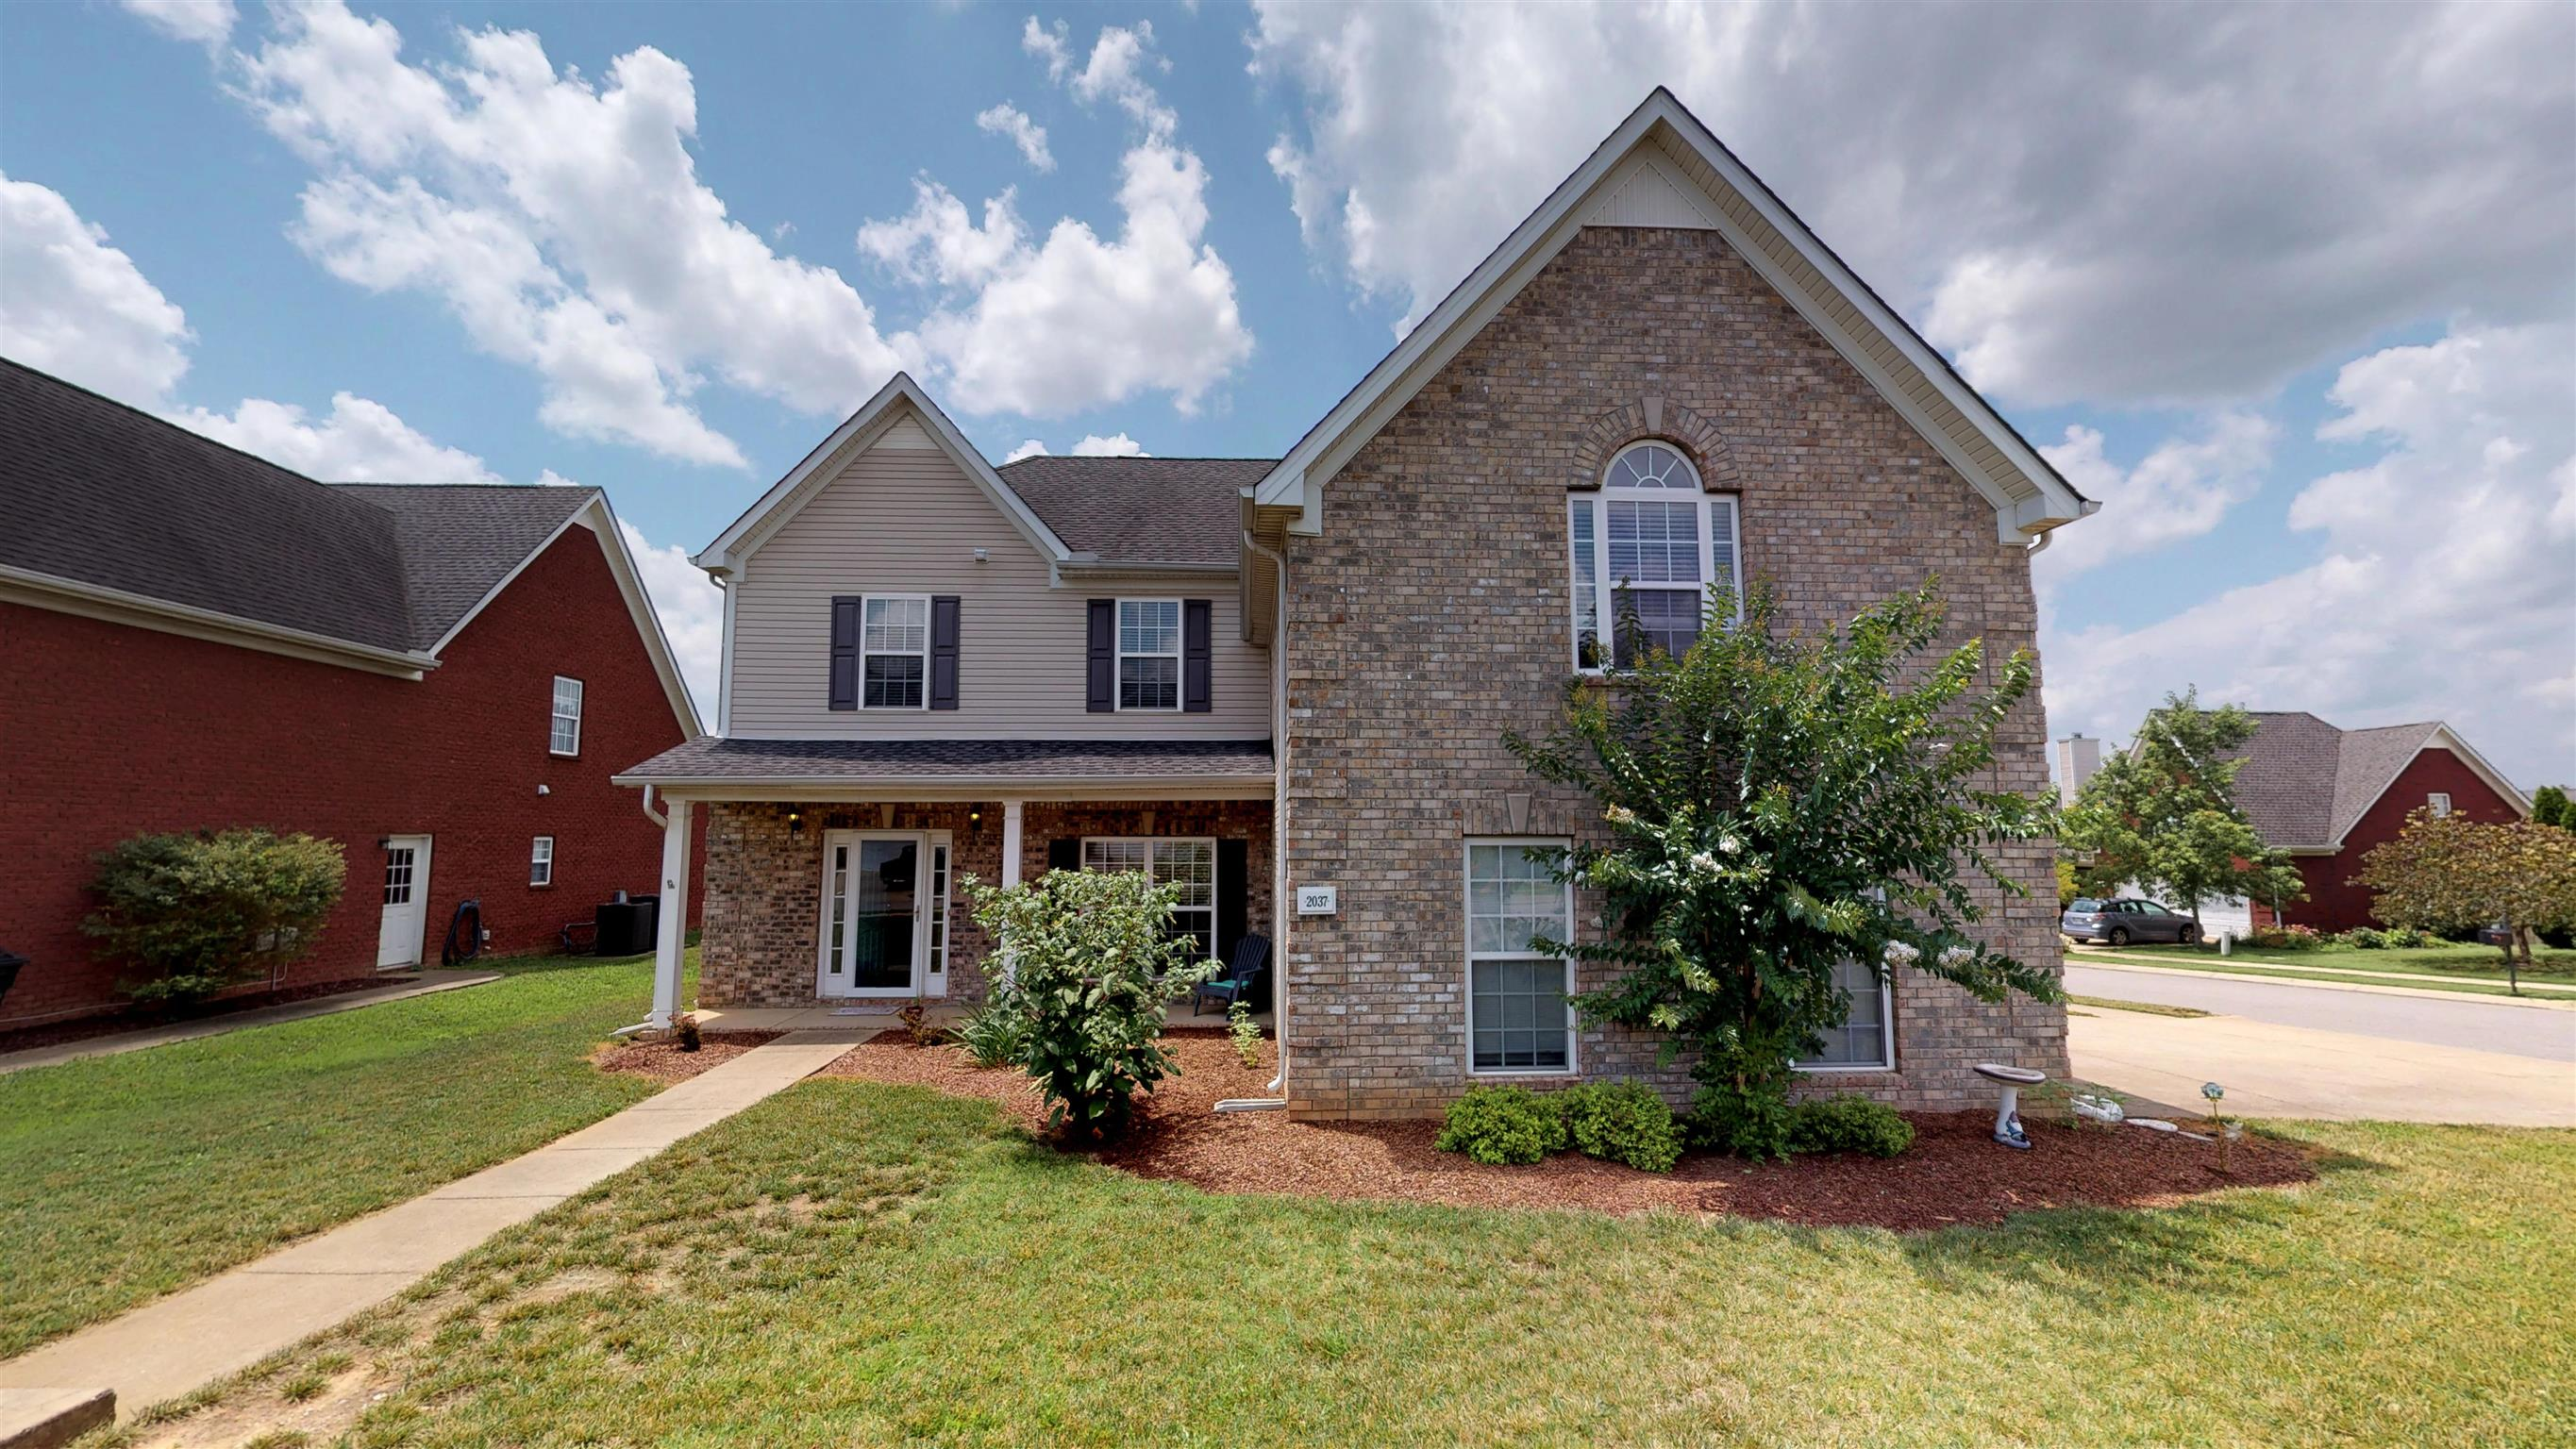 2037 Fiona Way, Spring Hill, TN 37174 - Spring Hill, TN real estate listing